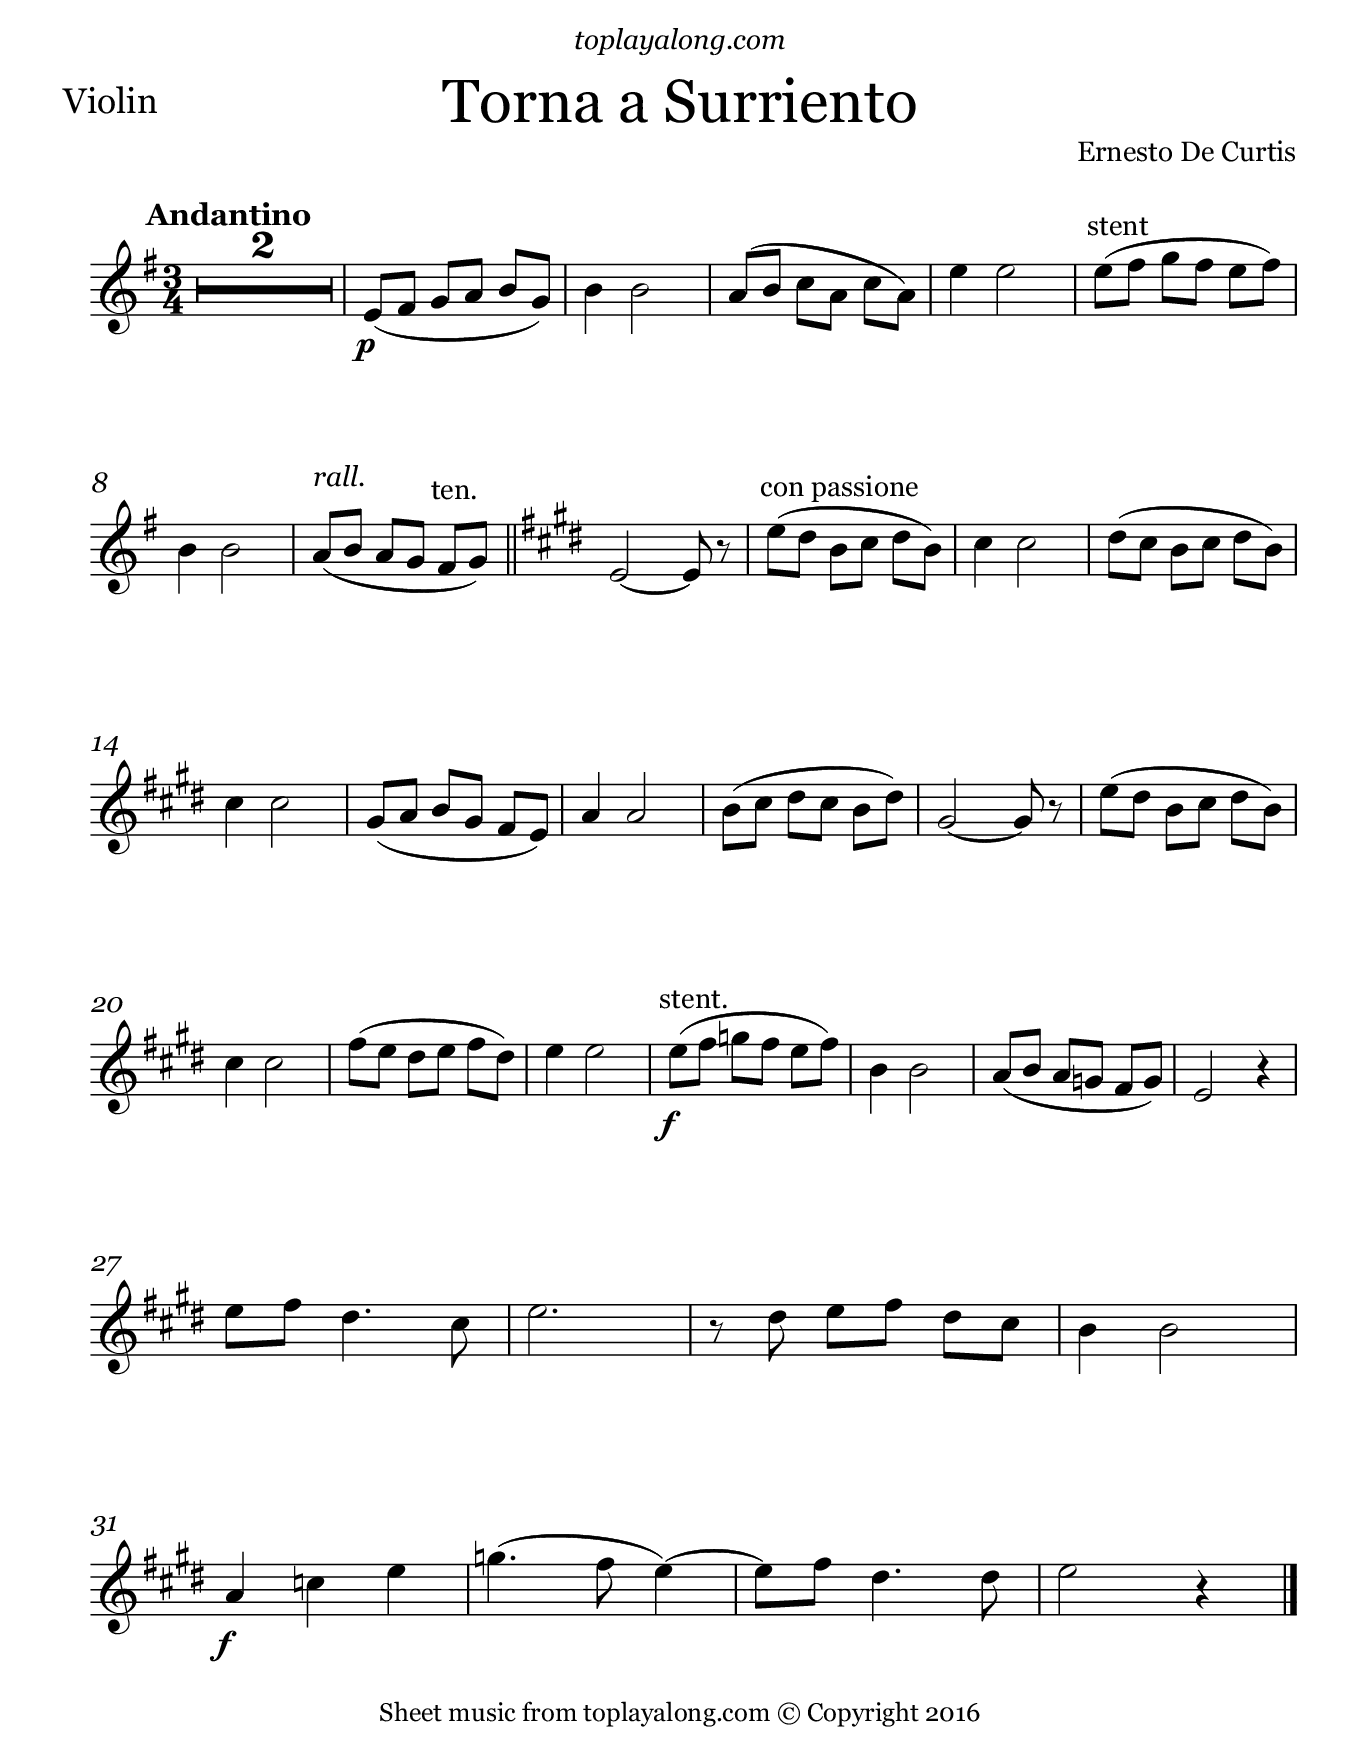 Torna a Surriento by Curtis. Sheet music for Violin, page 1.